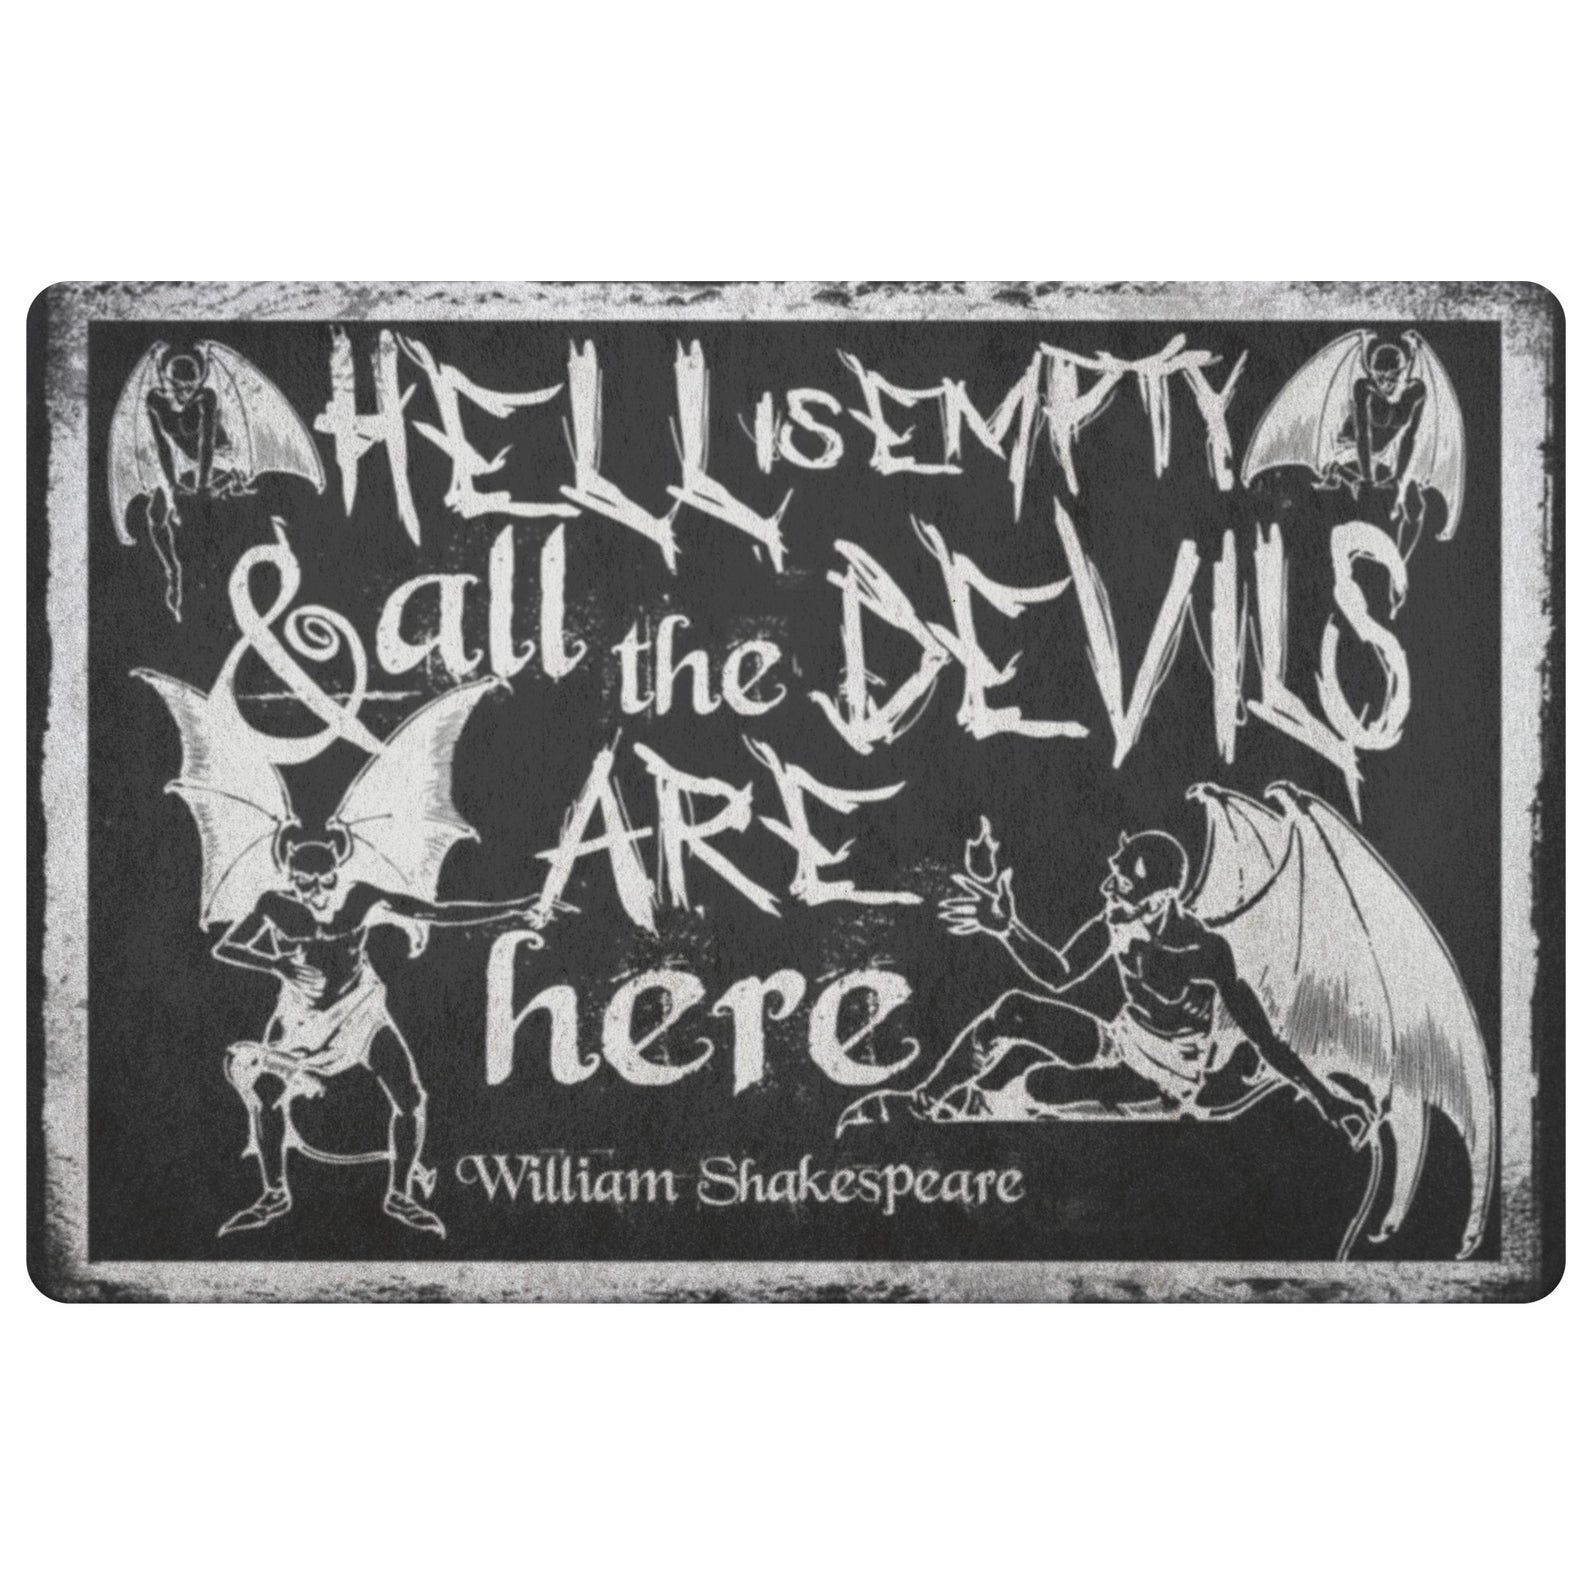 """A black doormat covered in white devils that reads """"Hell is empty and all the devils are here."""""""